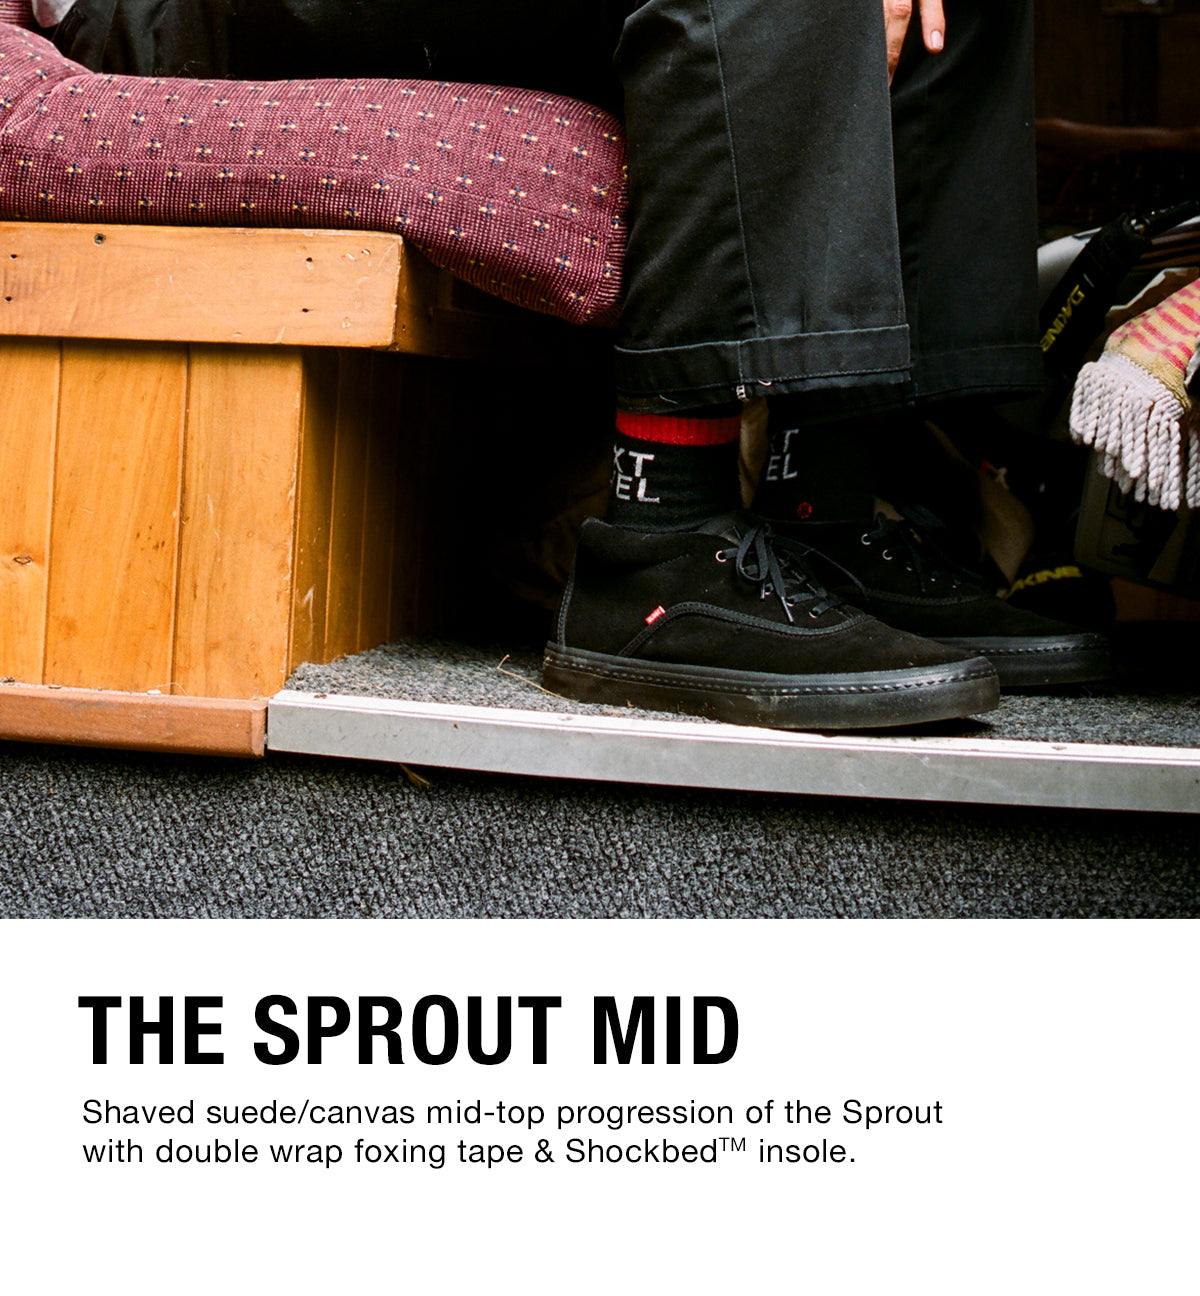 The Sprout Mid